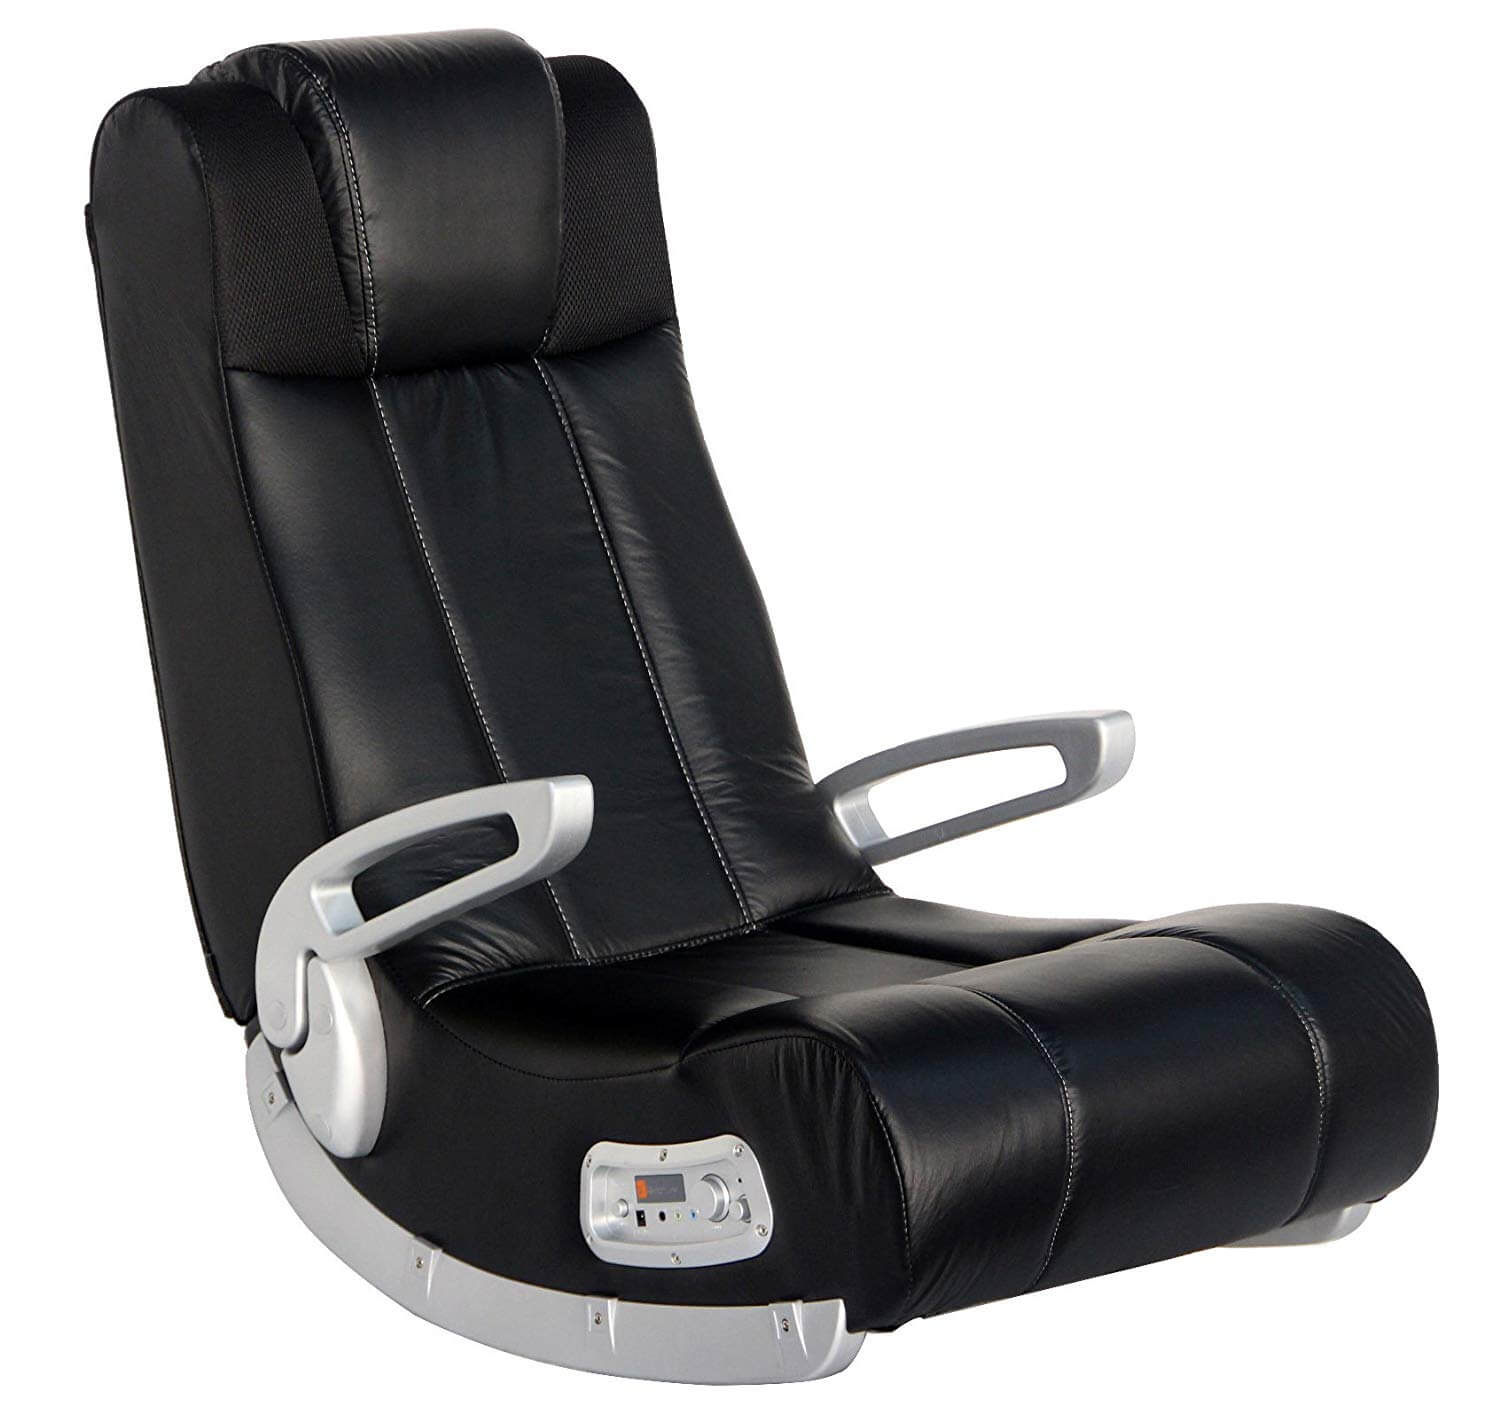 Game Chair With Speakers Best X Rocker Gaming Chairs Buyer Guide Reviews